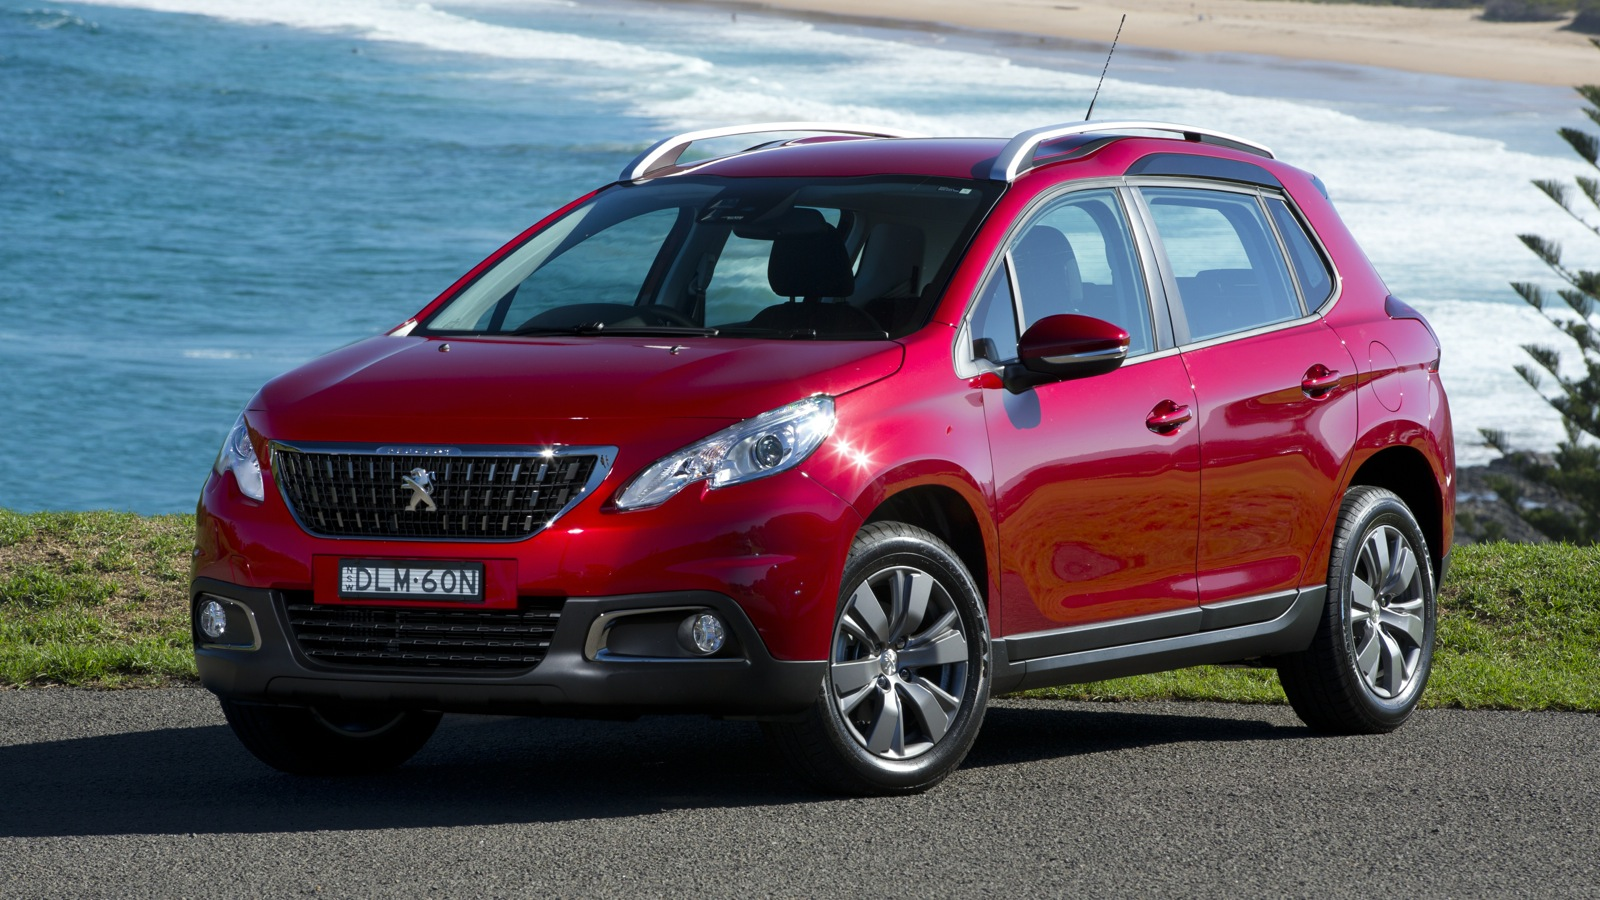 2017 peugeot 2008 pricing and specs photos caradvice. Black Bedroom Furniture Sets. Home Design Ideas